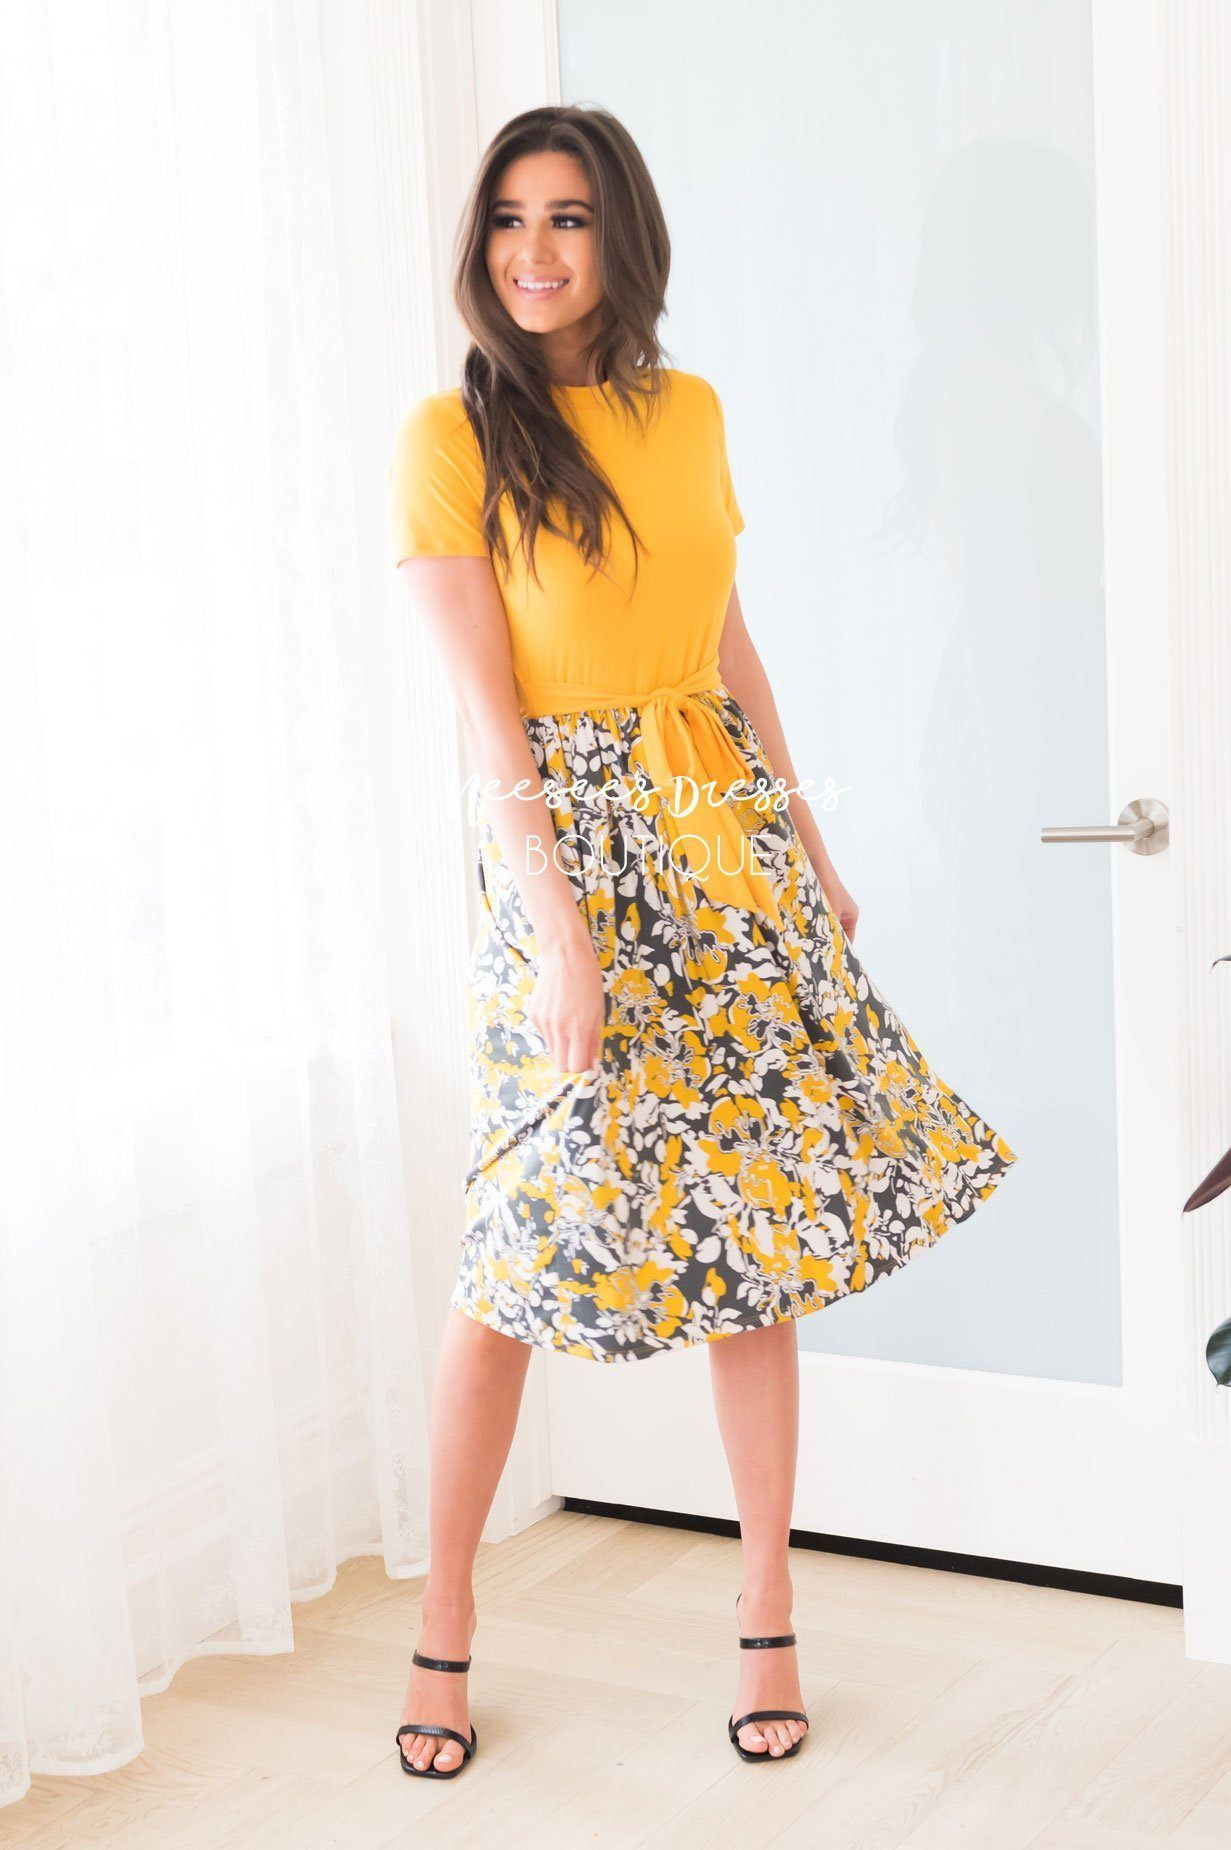 The Delta Modest Mid Length Dress Neesee S Dresses Modest Fashion Christian Modest Dresses Modest Outfits [ 1850 x 1231 Pixel ]